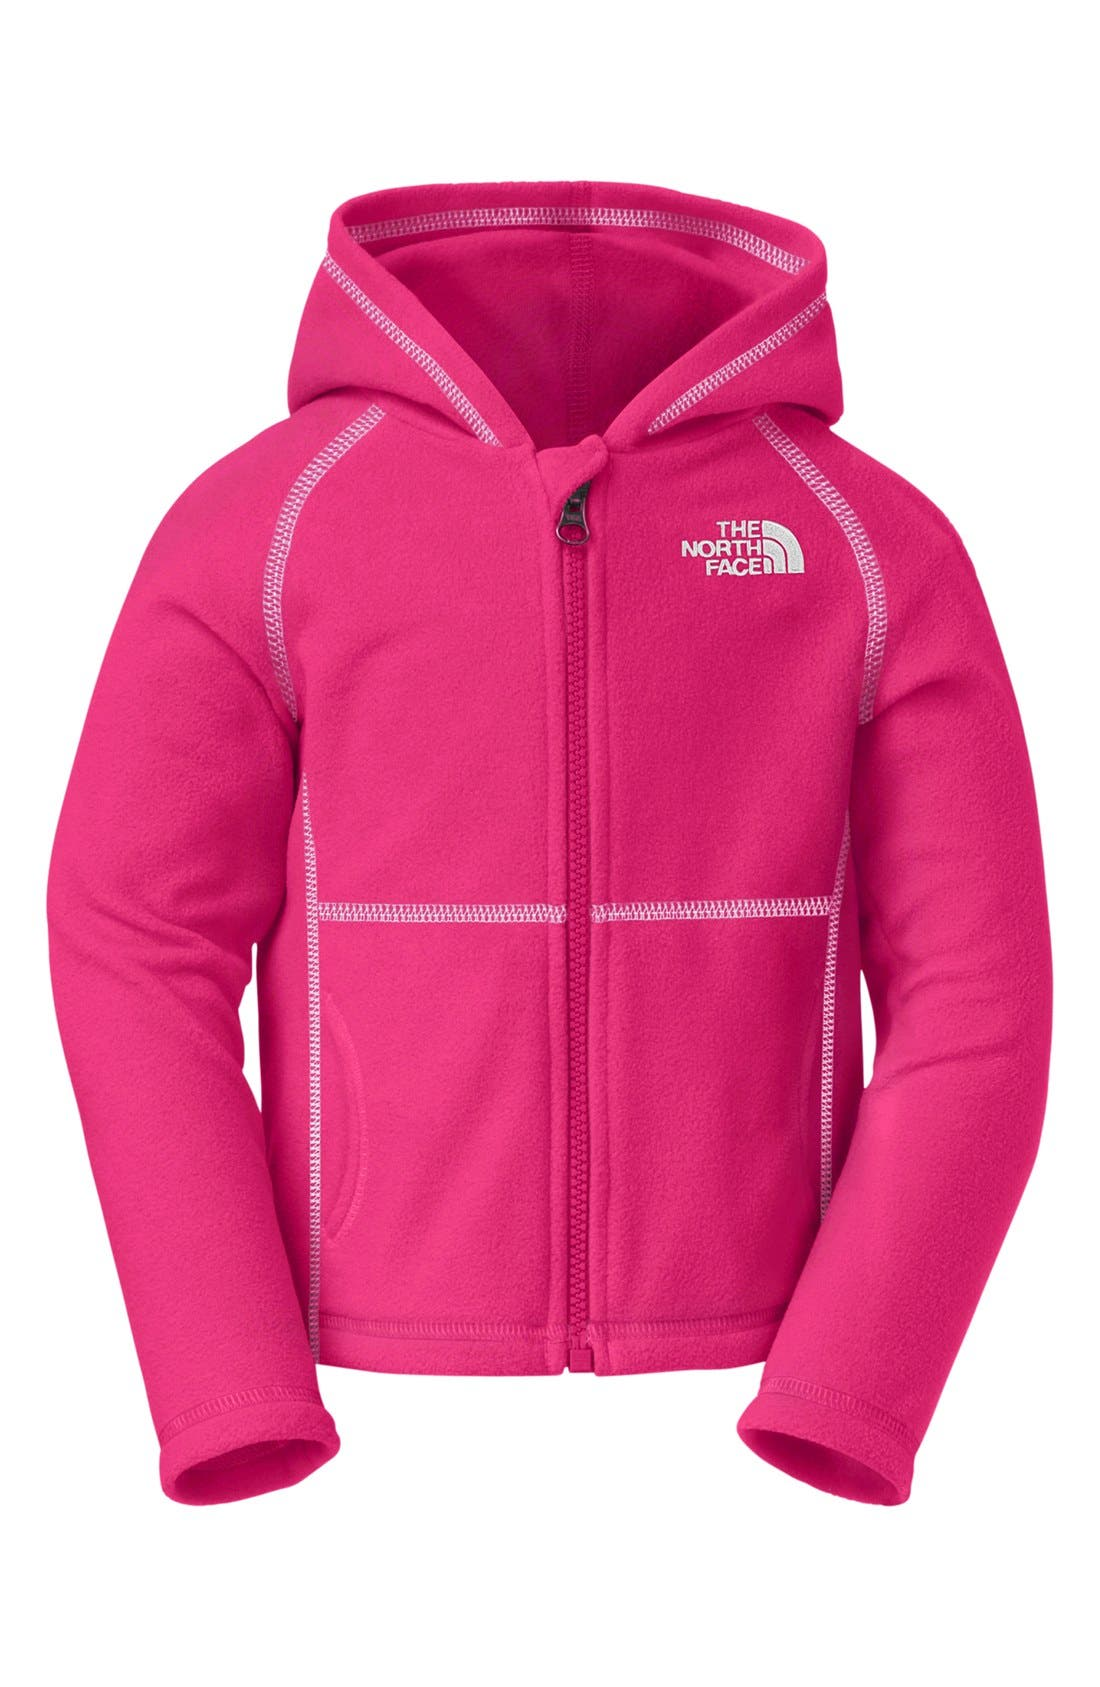 Main Image - The North Face 'Glacier' Full Zip Hoodie (Toddler Girls)